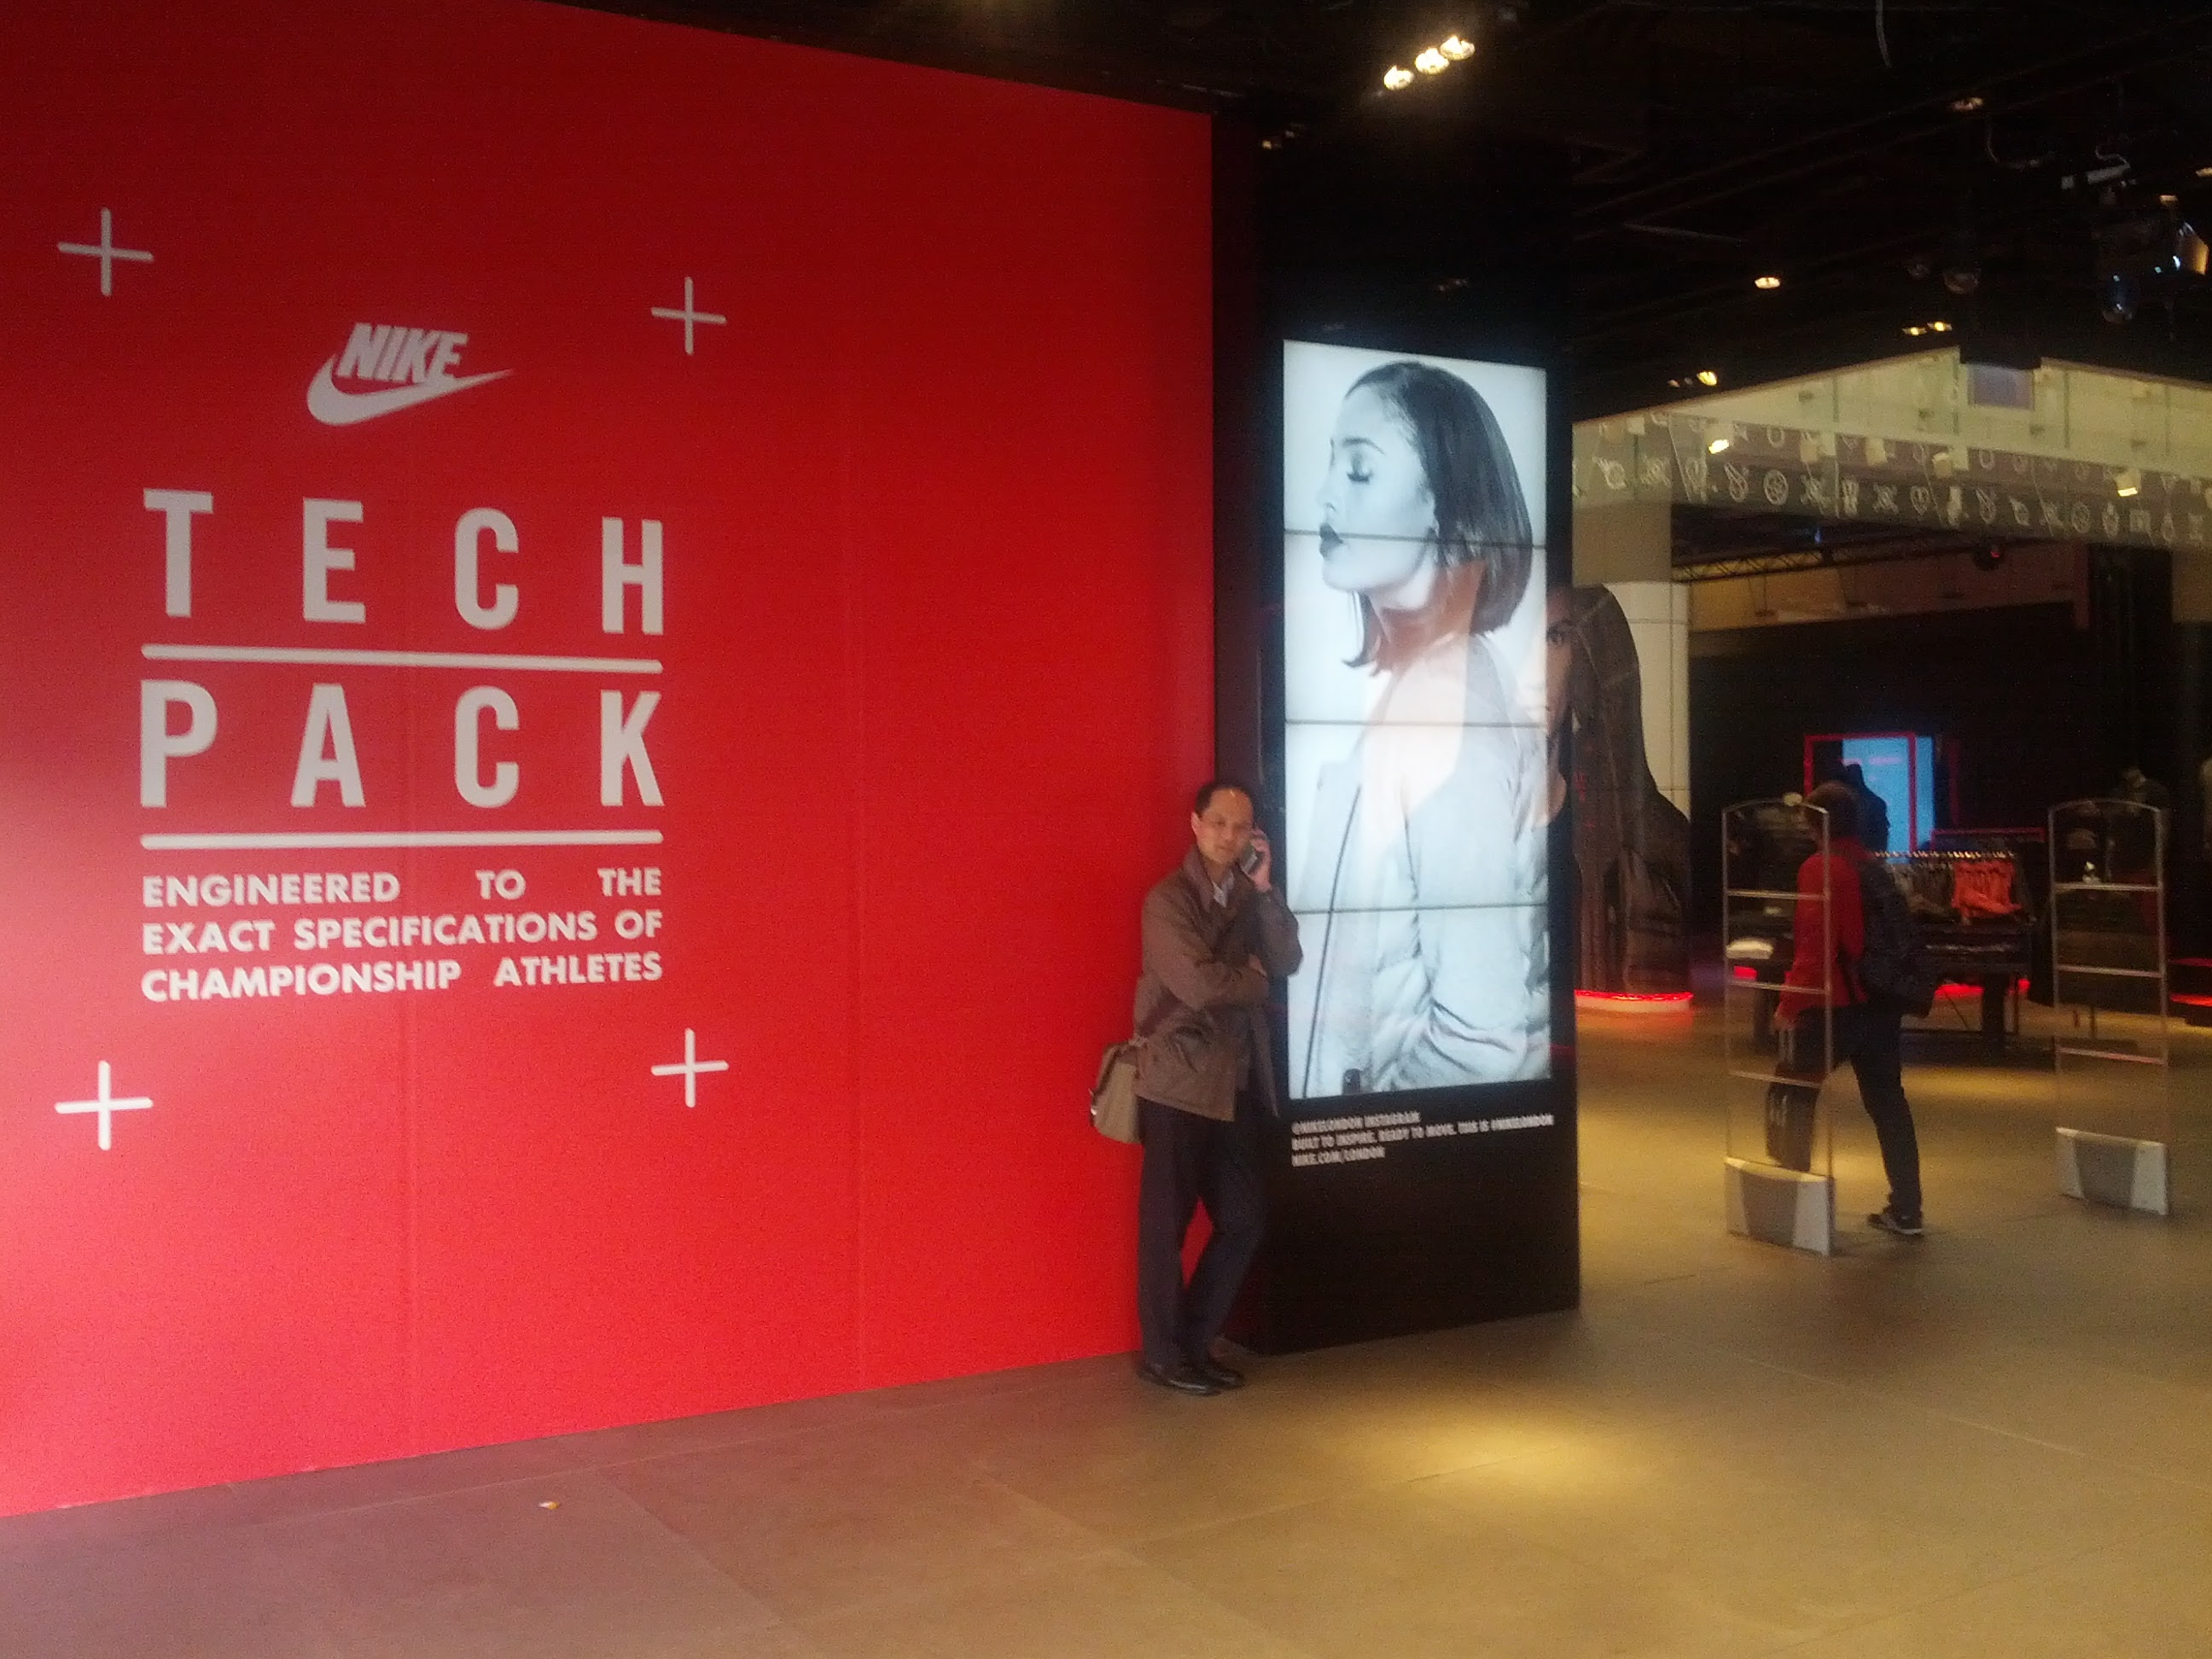 Nike-TechPack_FilippoAiello